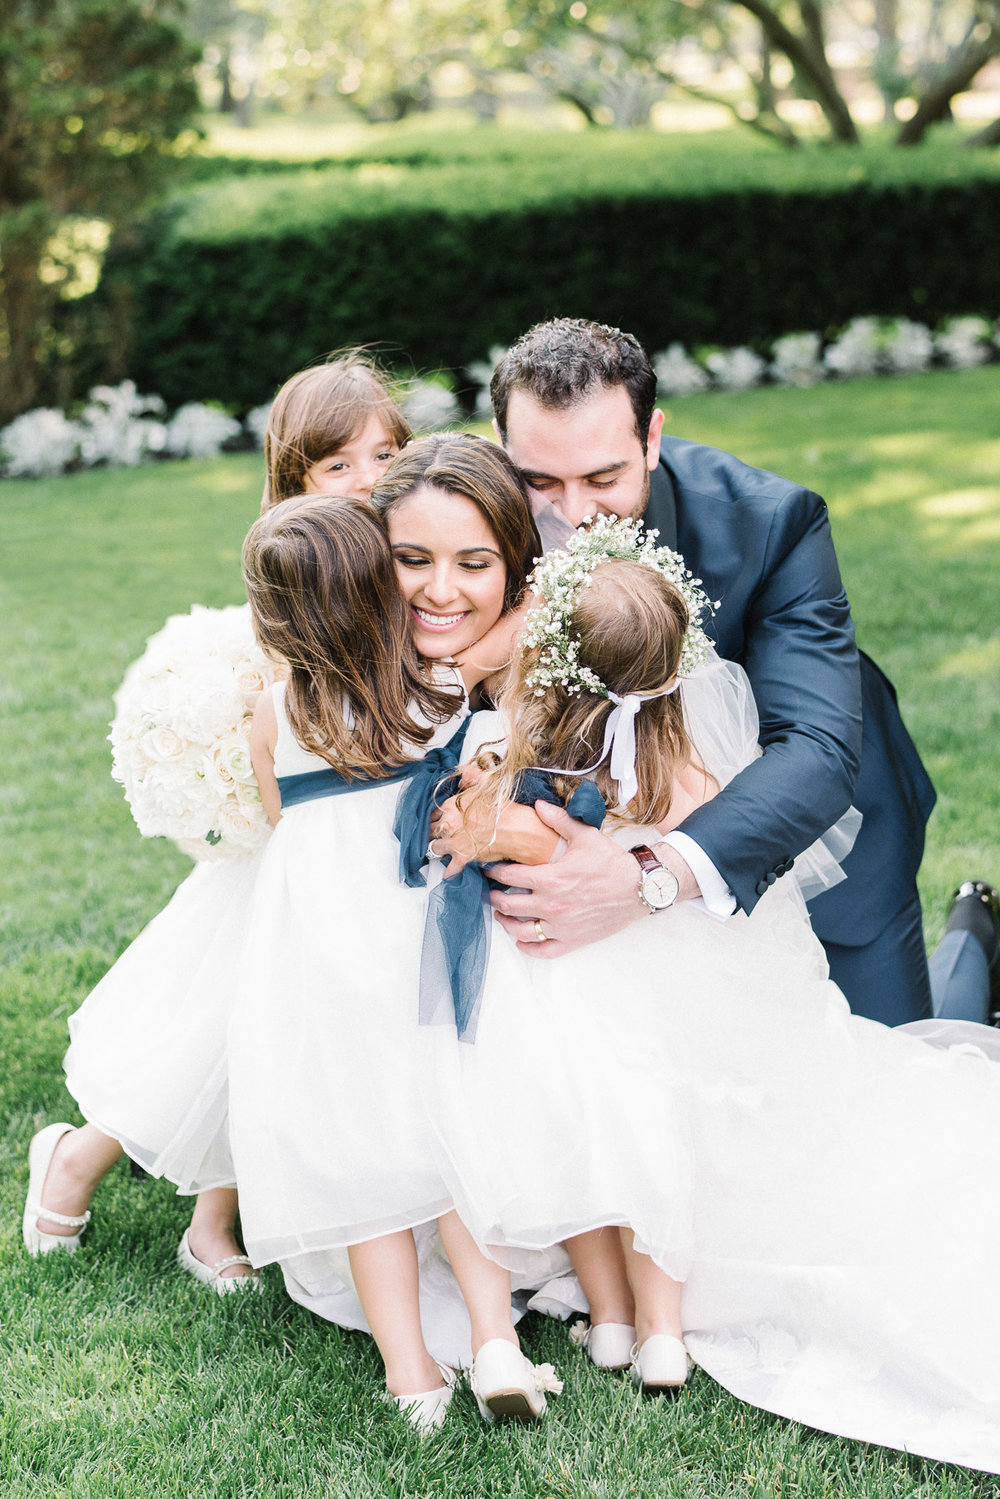 The Carltun Long Island Wedding with Flower Girls